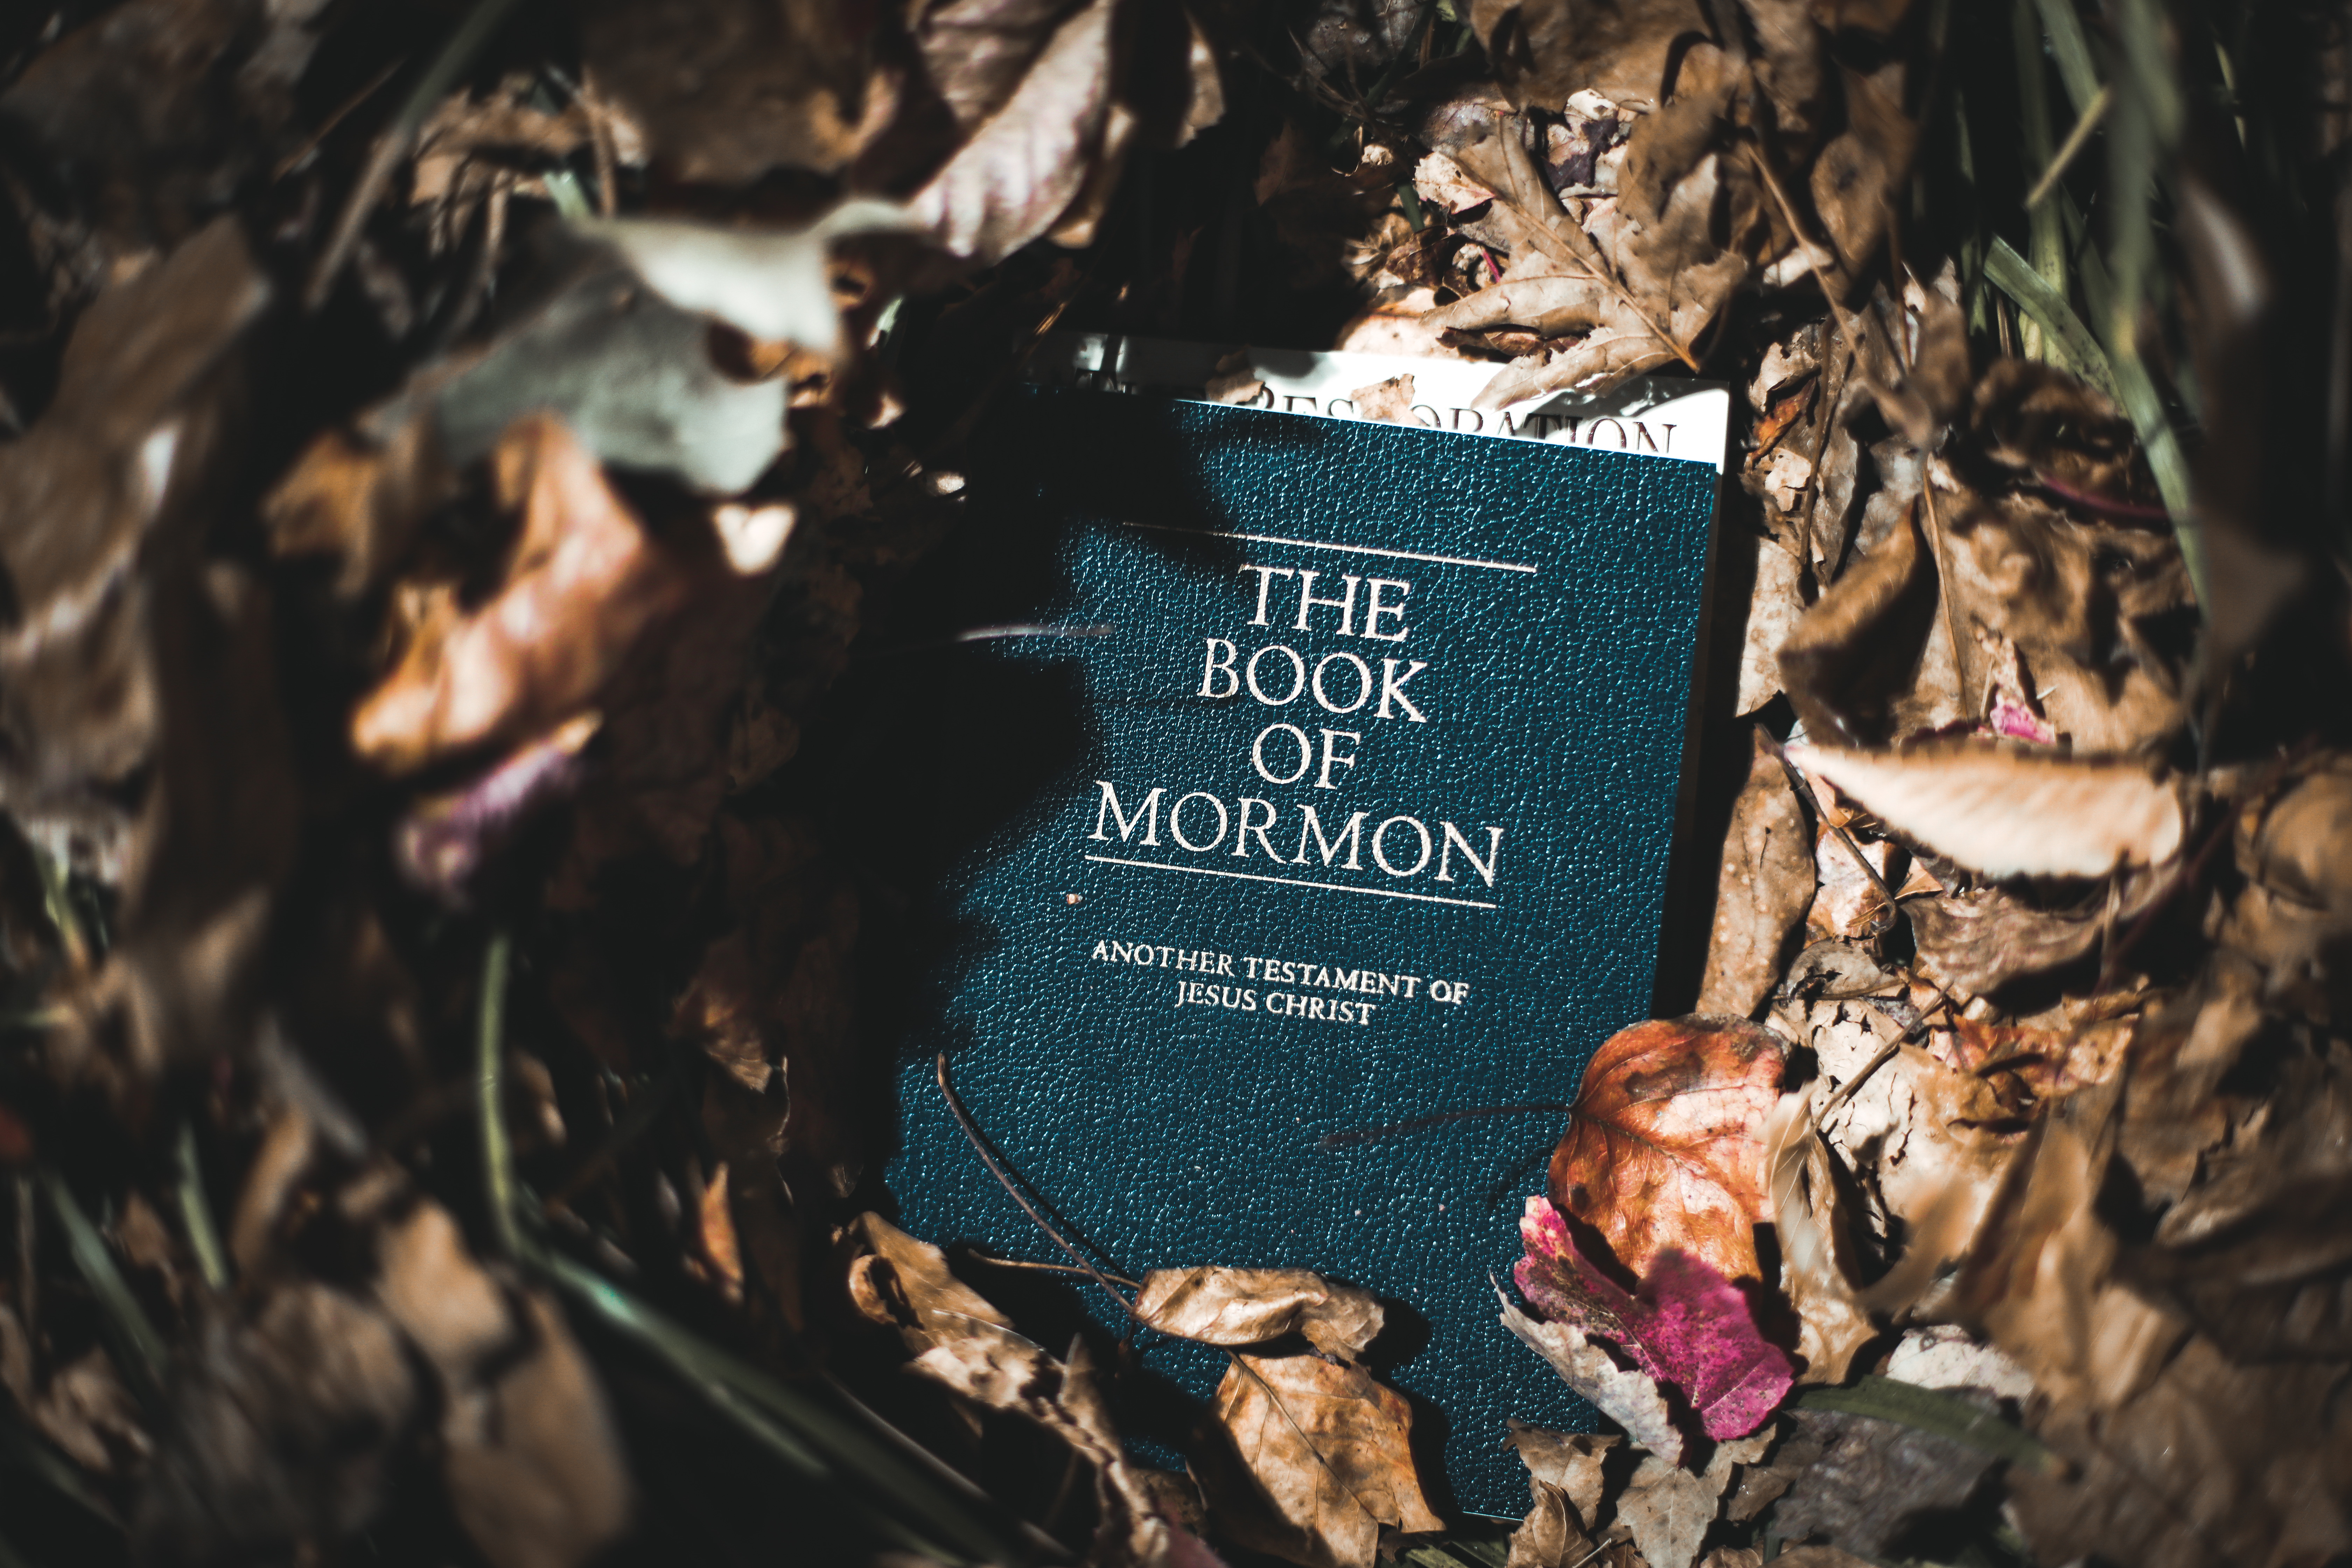 Pictured is a Book of Mormon. SHUTTERSTOCK/ Nicole S Glass